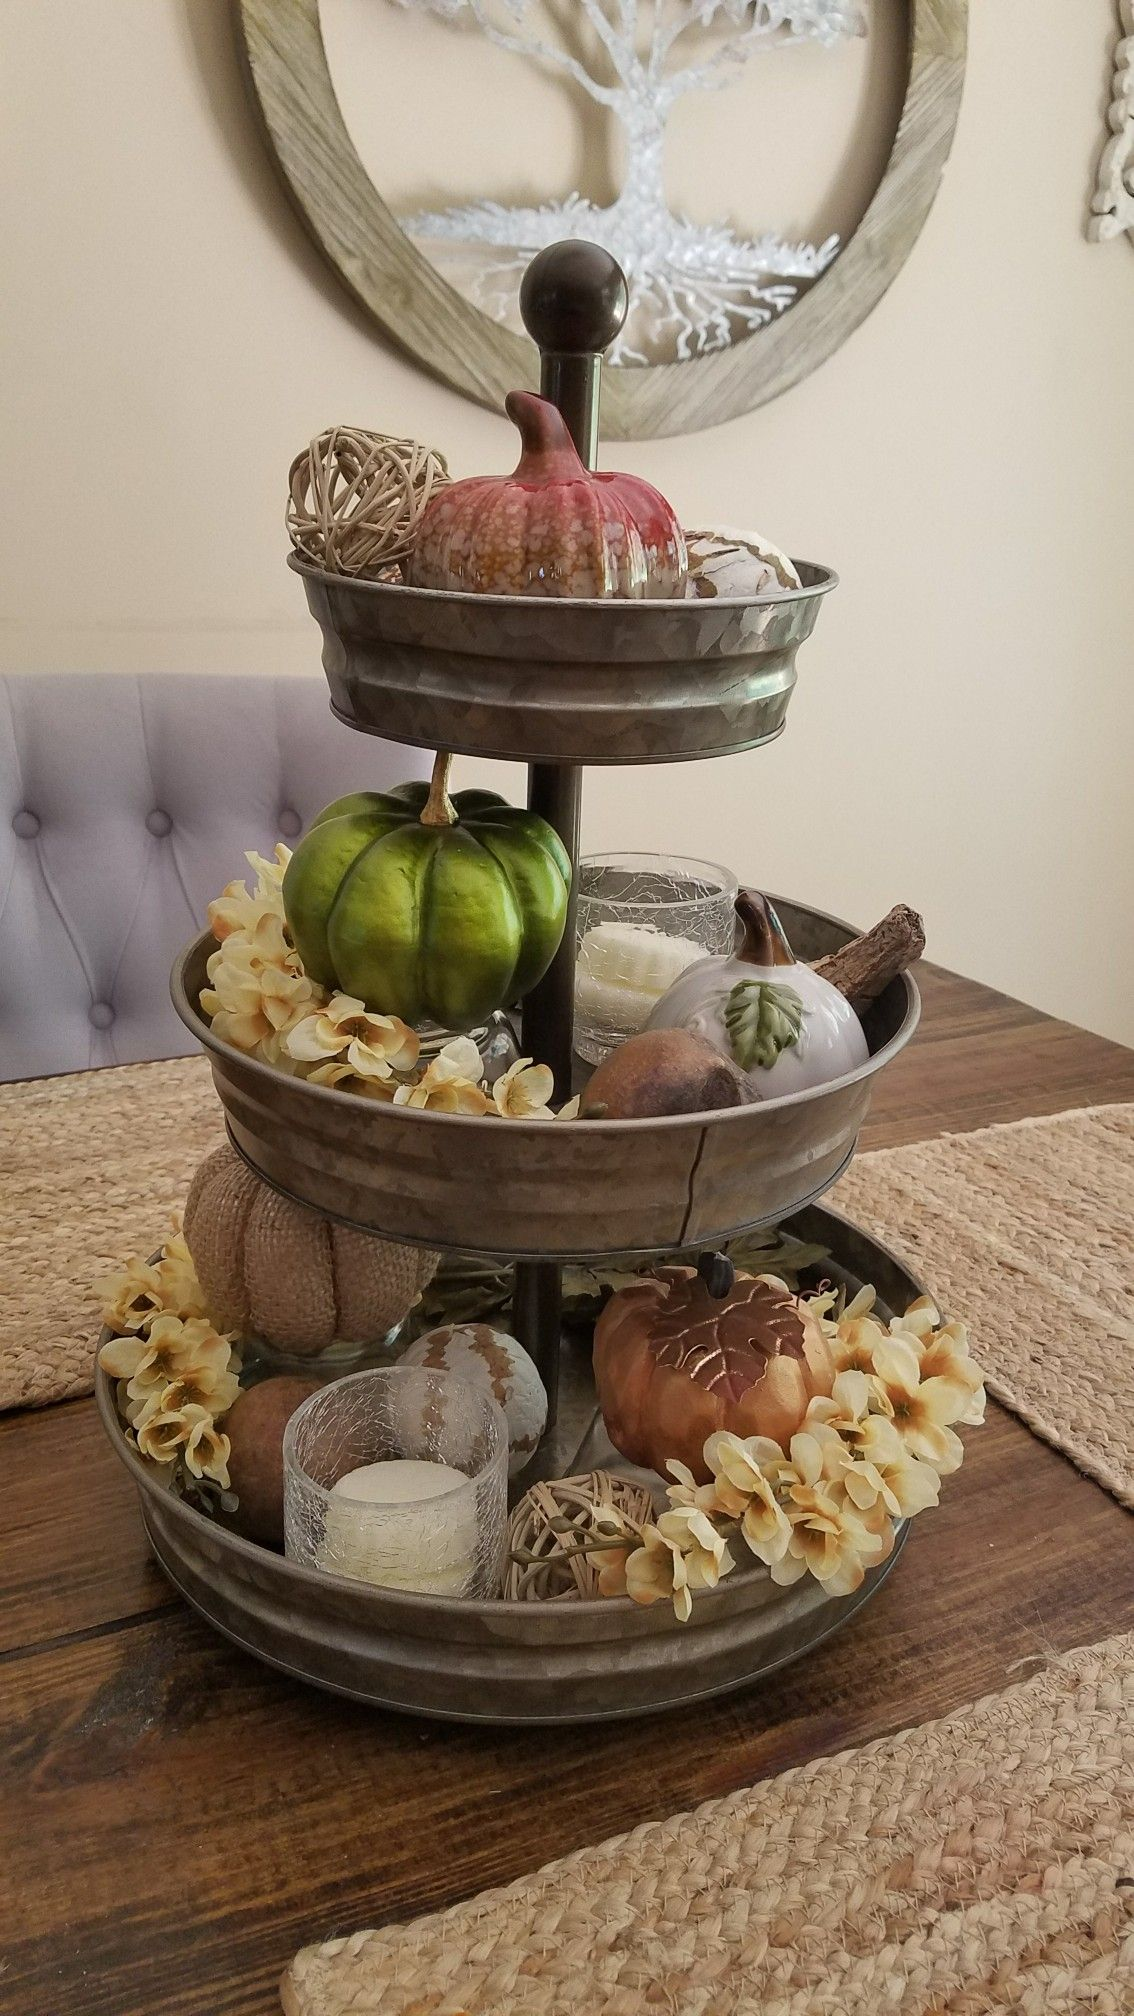 3 Tier Tray From Hobby Lobby With Fall Decor From The Dollar Tree Tray Decor Fall Decor Decor